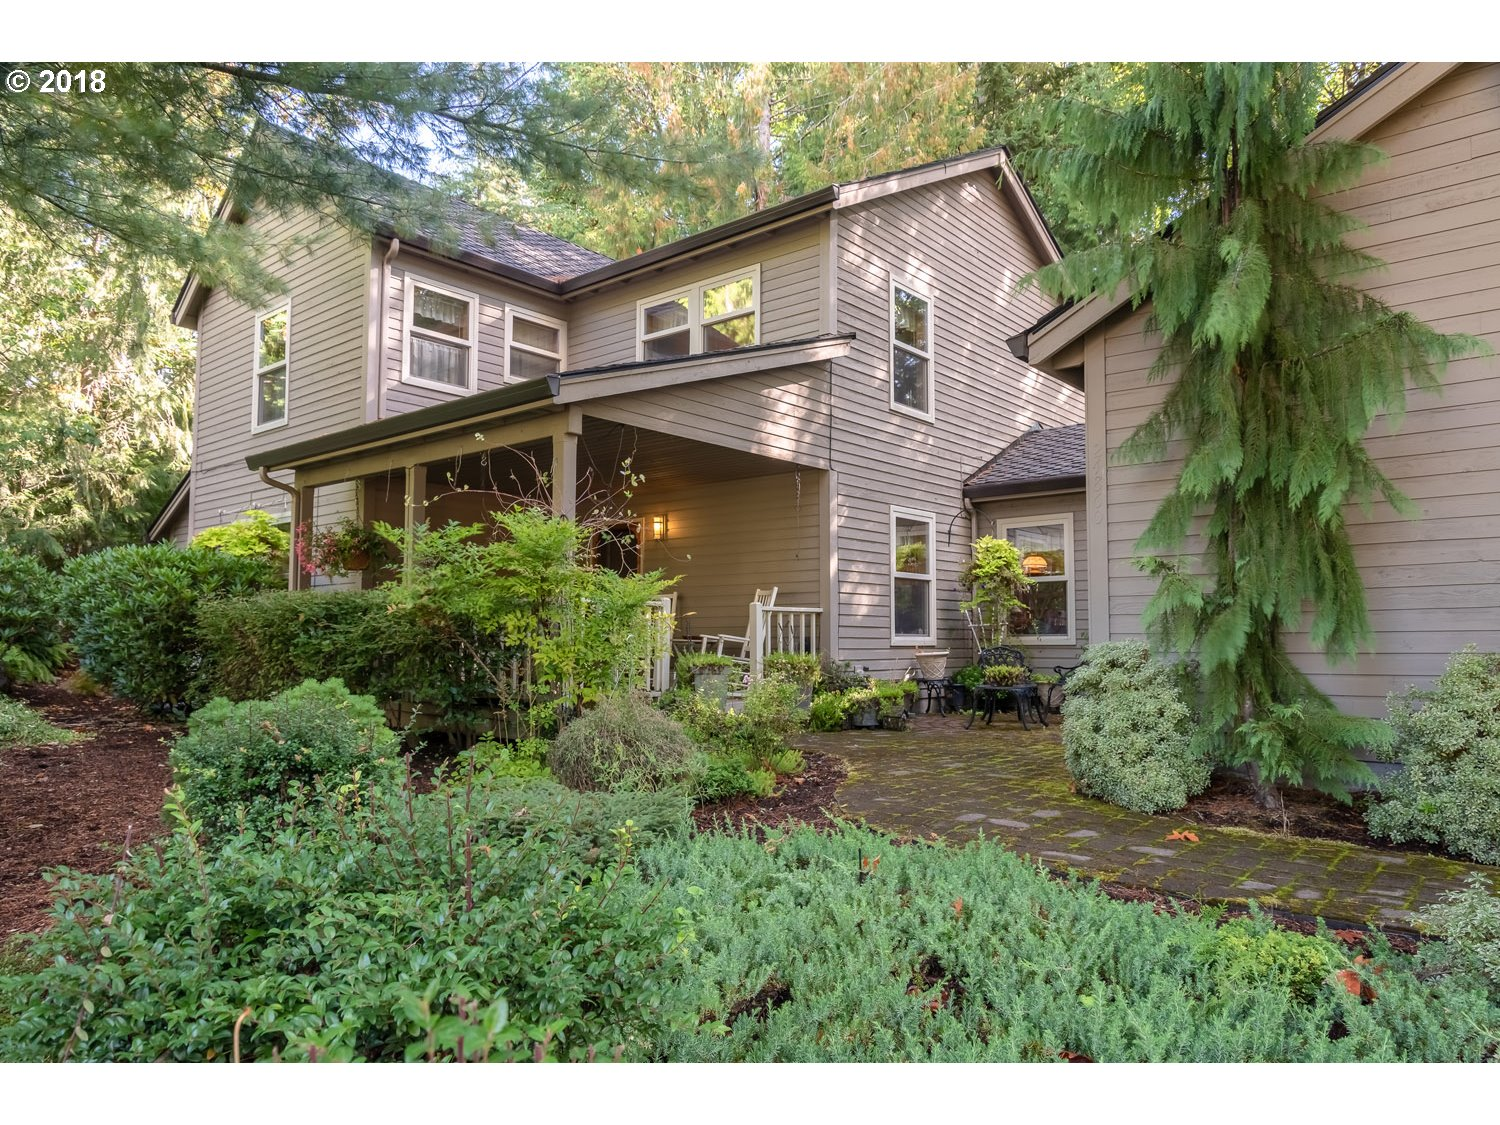 24860 E BRIGHT AVE Mt Hood  Home Listings - Merit Properties Mt Hood Real Estate